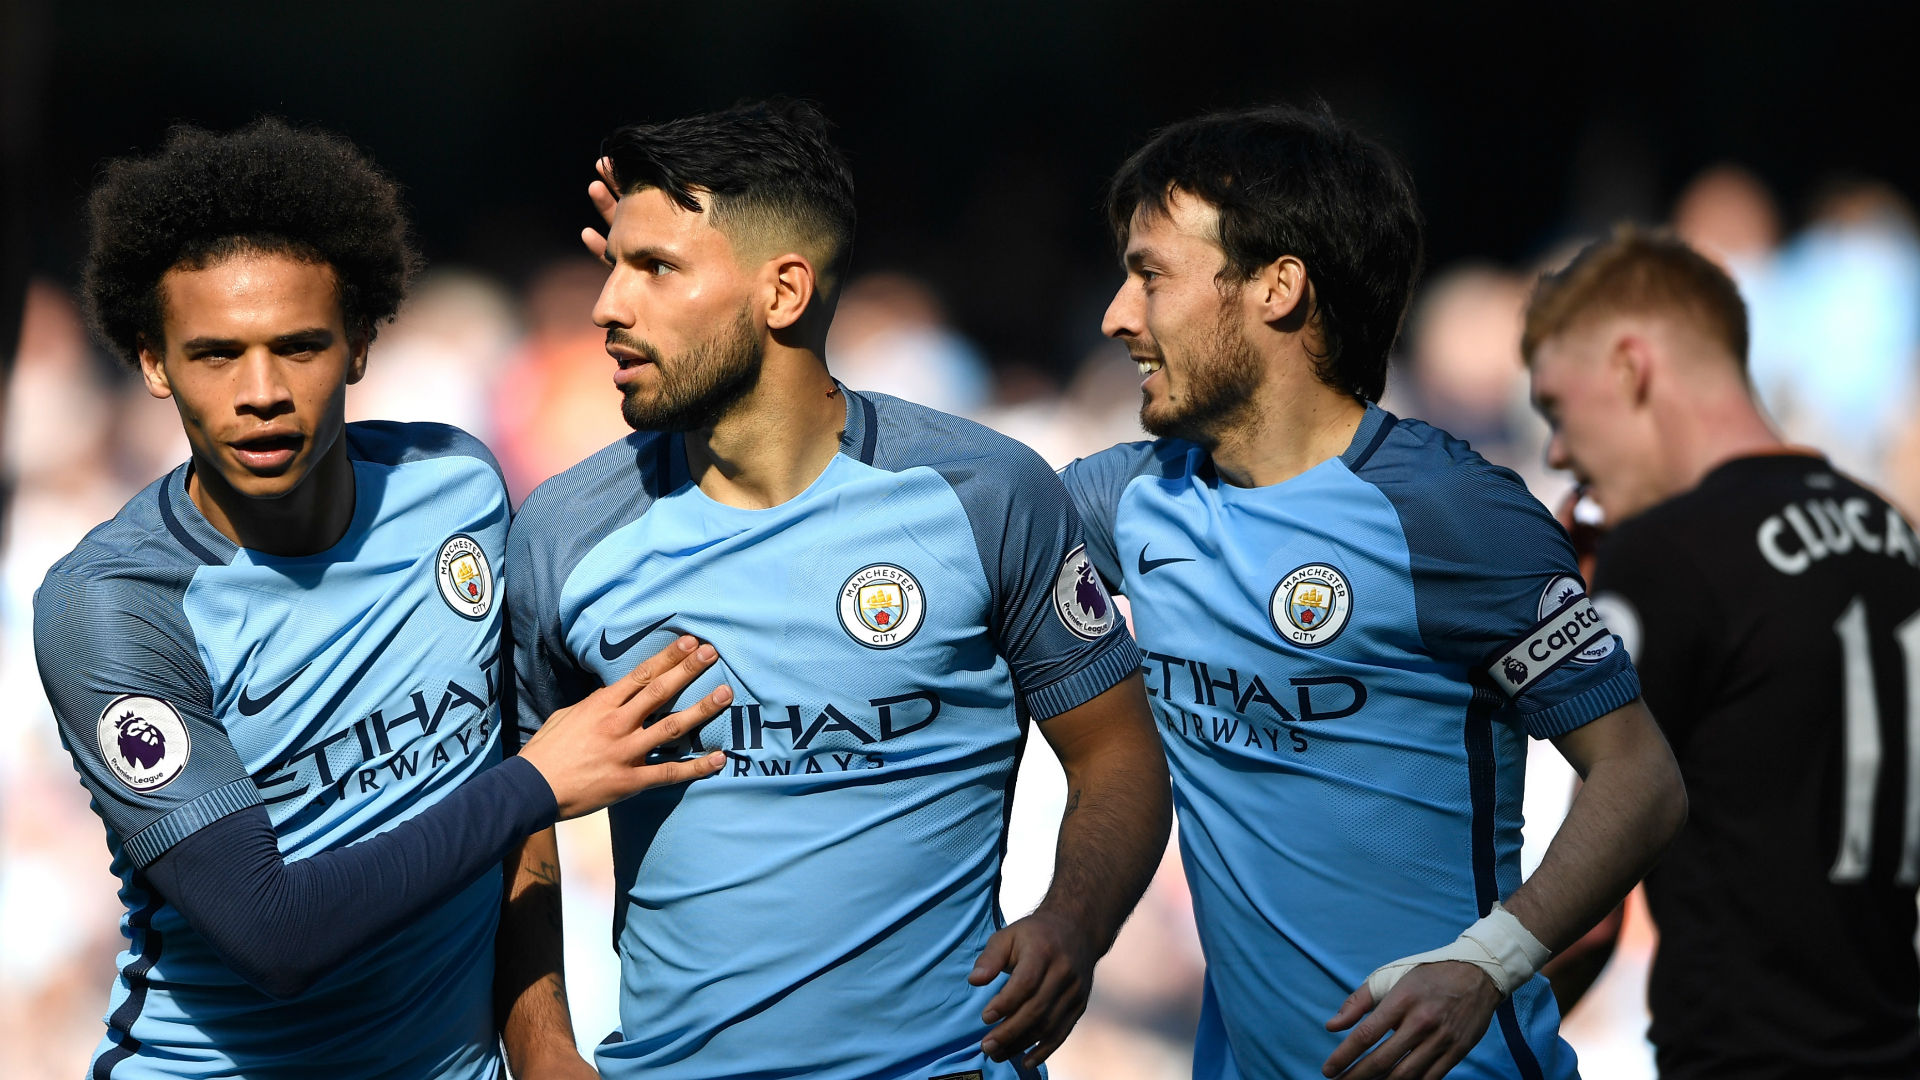 City get back on track with win over Hull